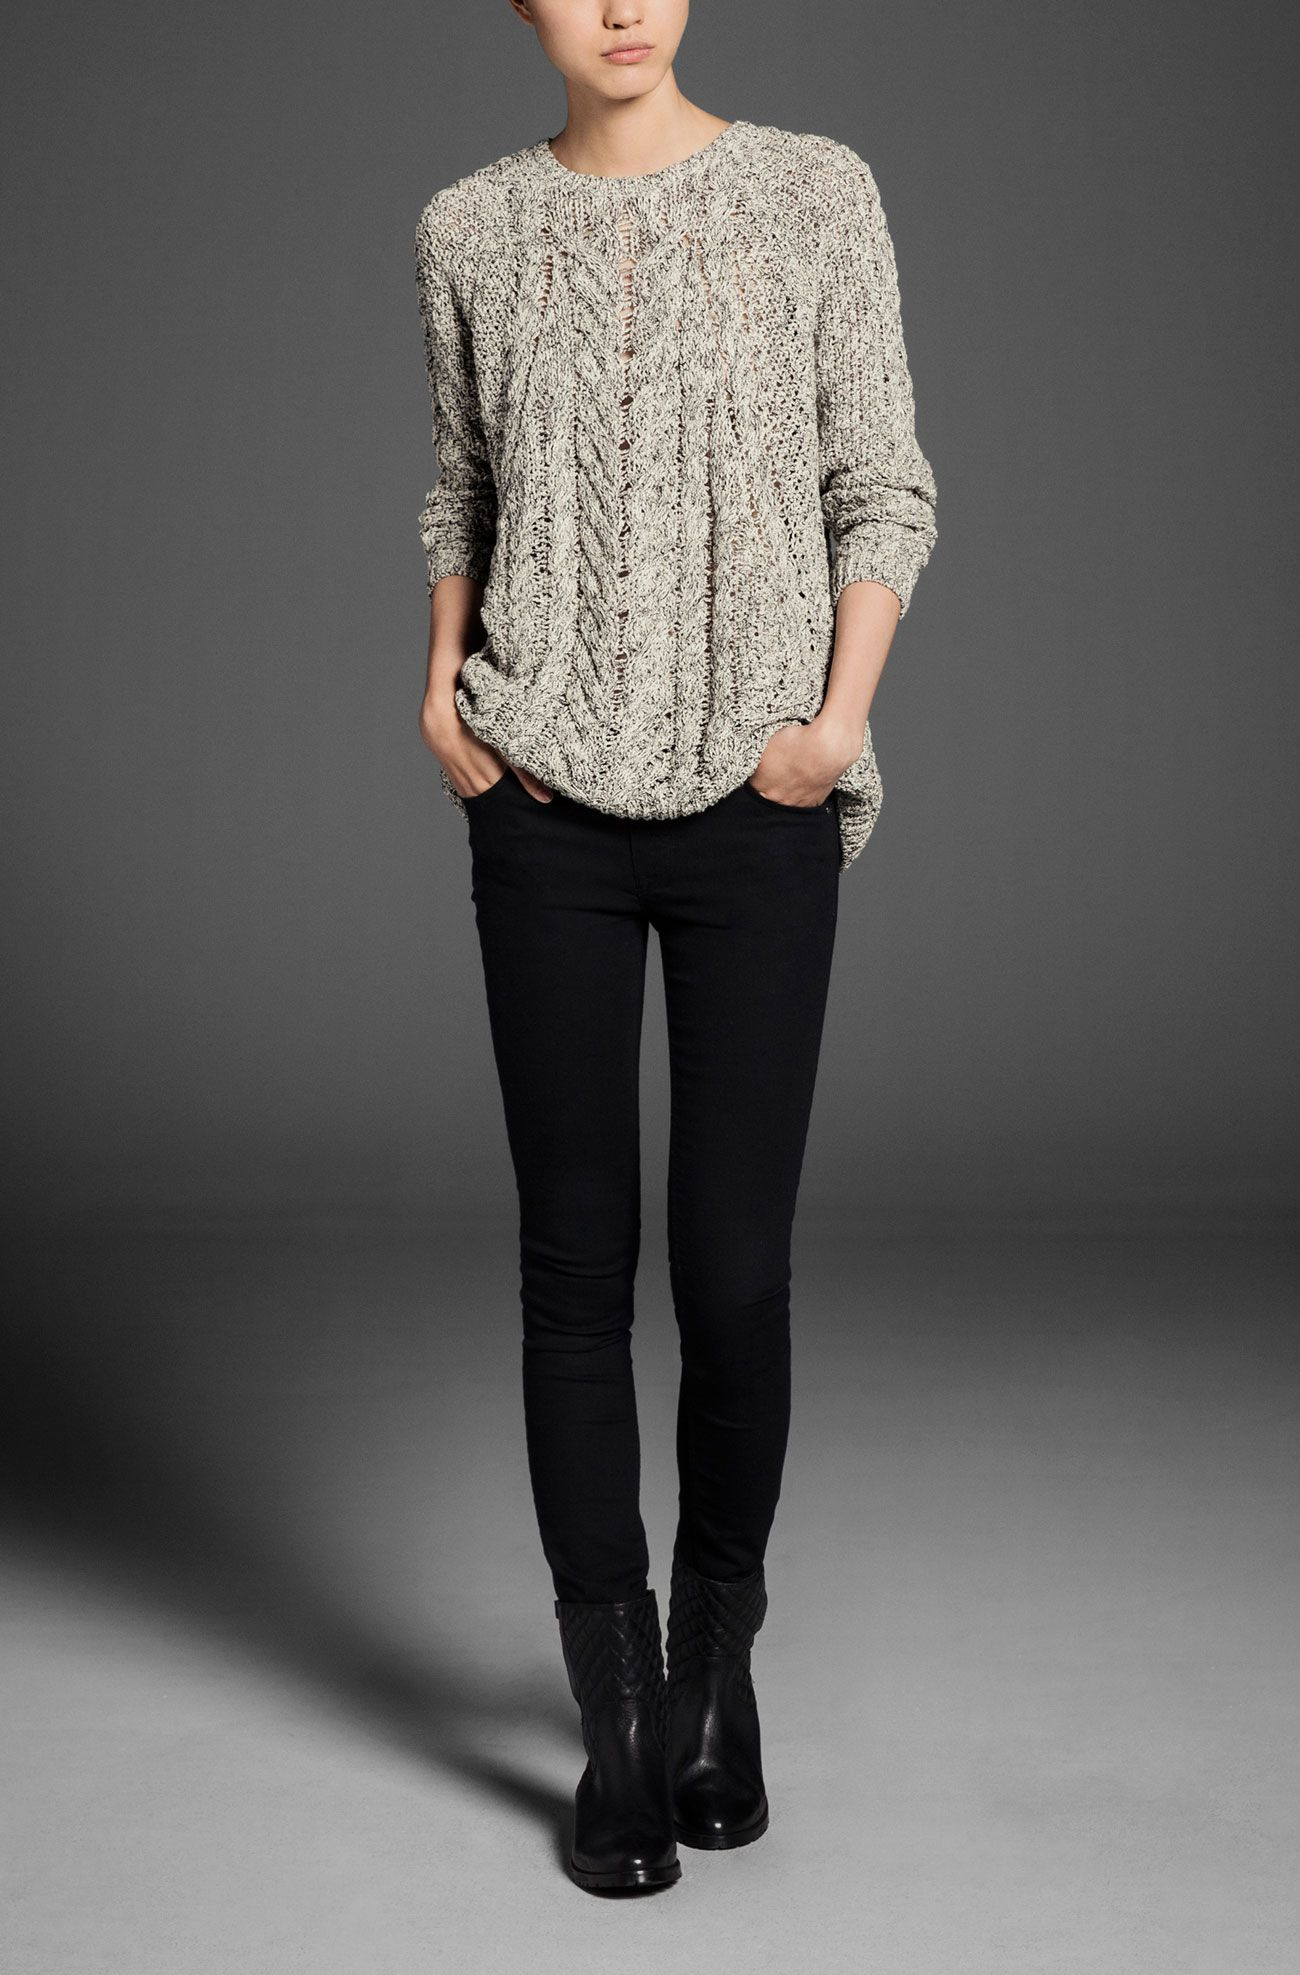 FANTASY TWISTED YARN SWEATER - View all - Sweaters & Cardigans - WOMEN - Portugal